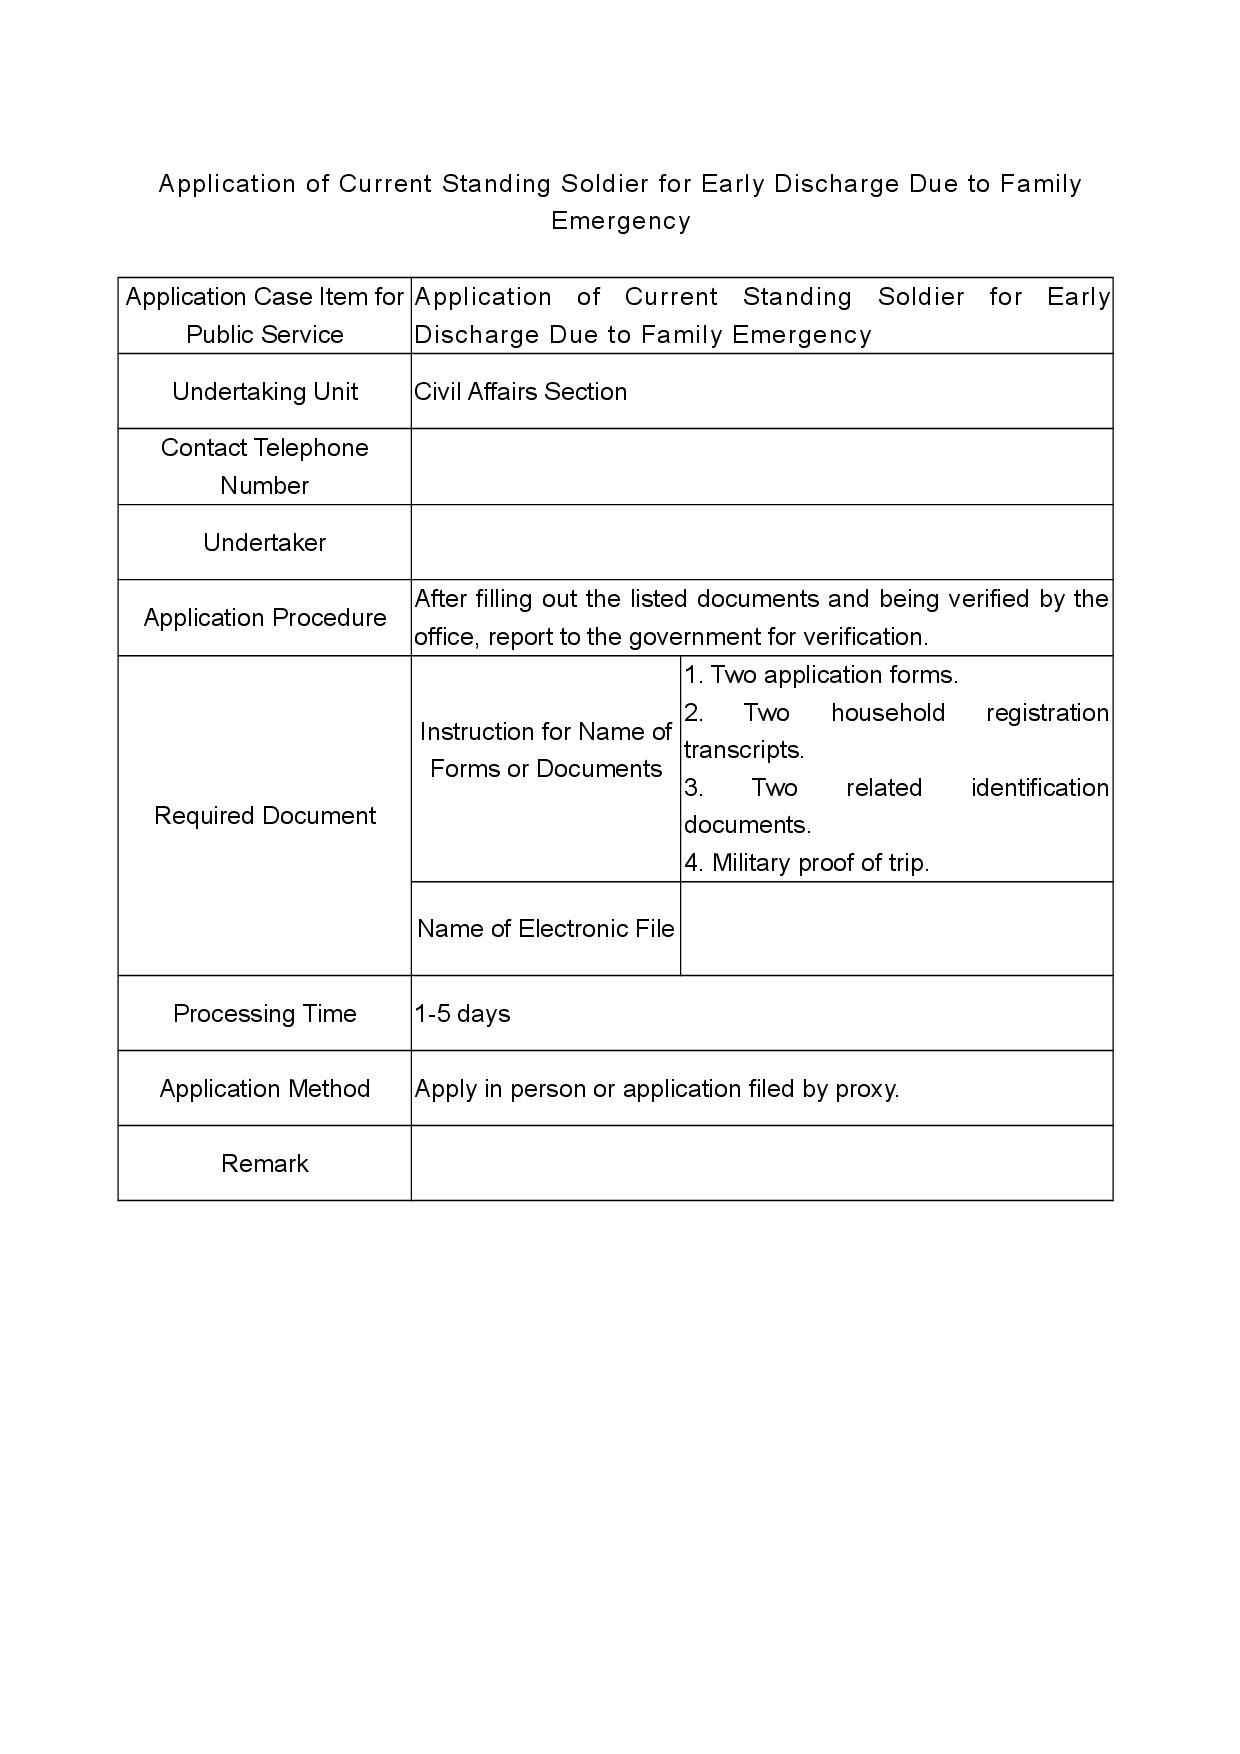 Application of Current Standing Soldier for Early Discharge Due to Family Emergency